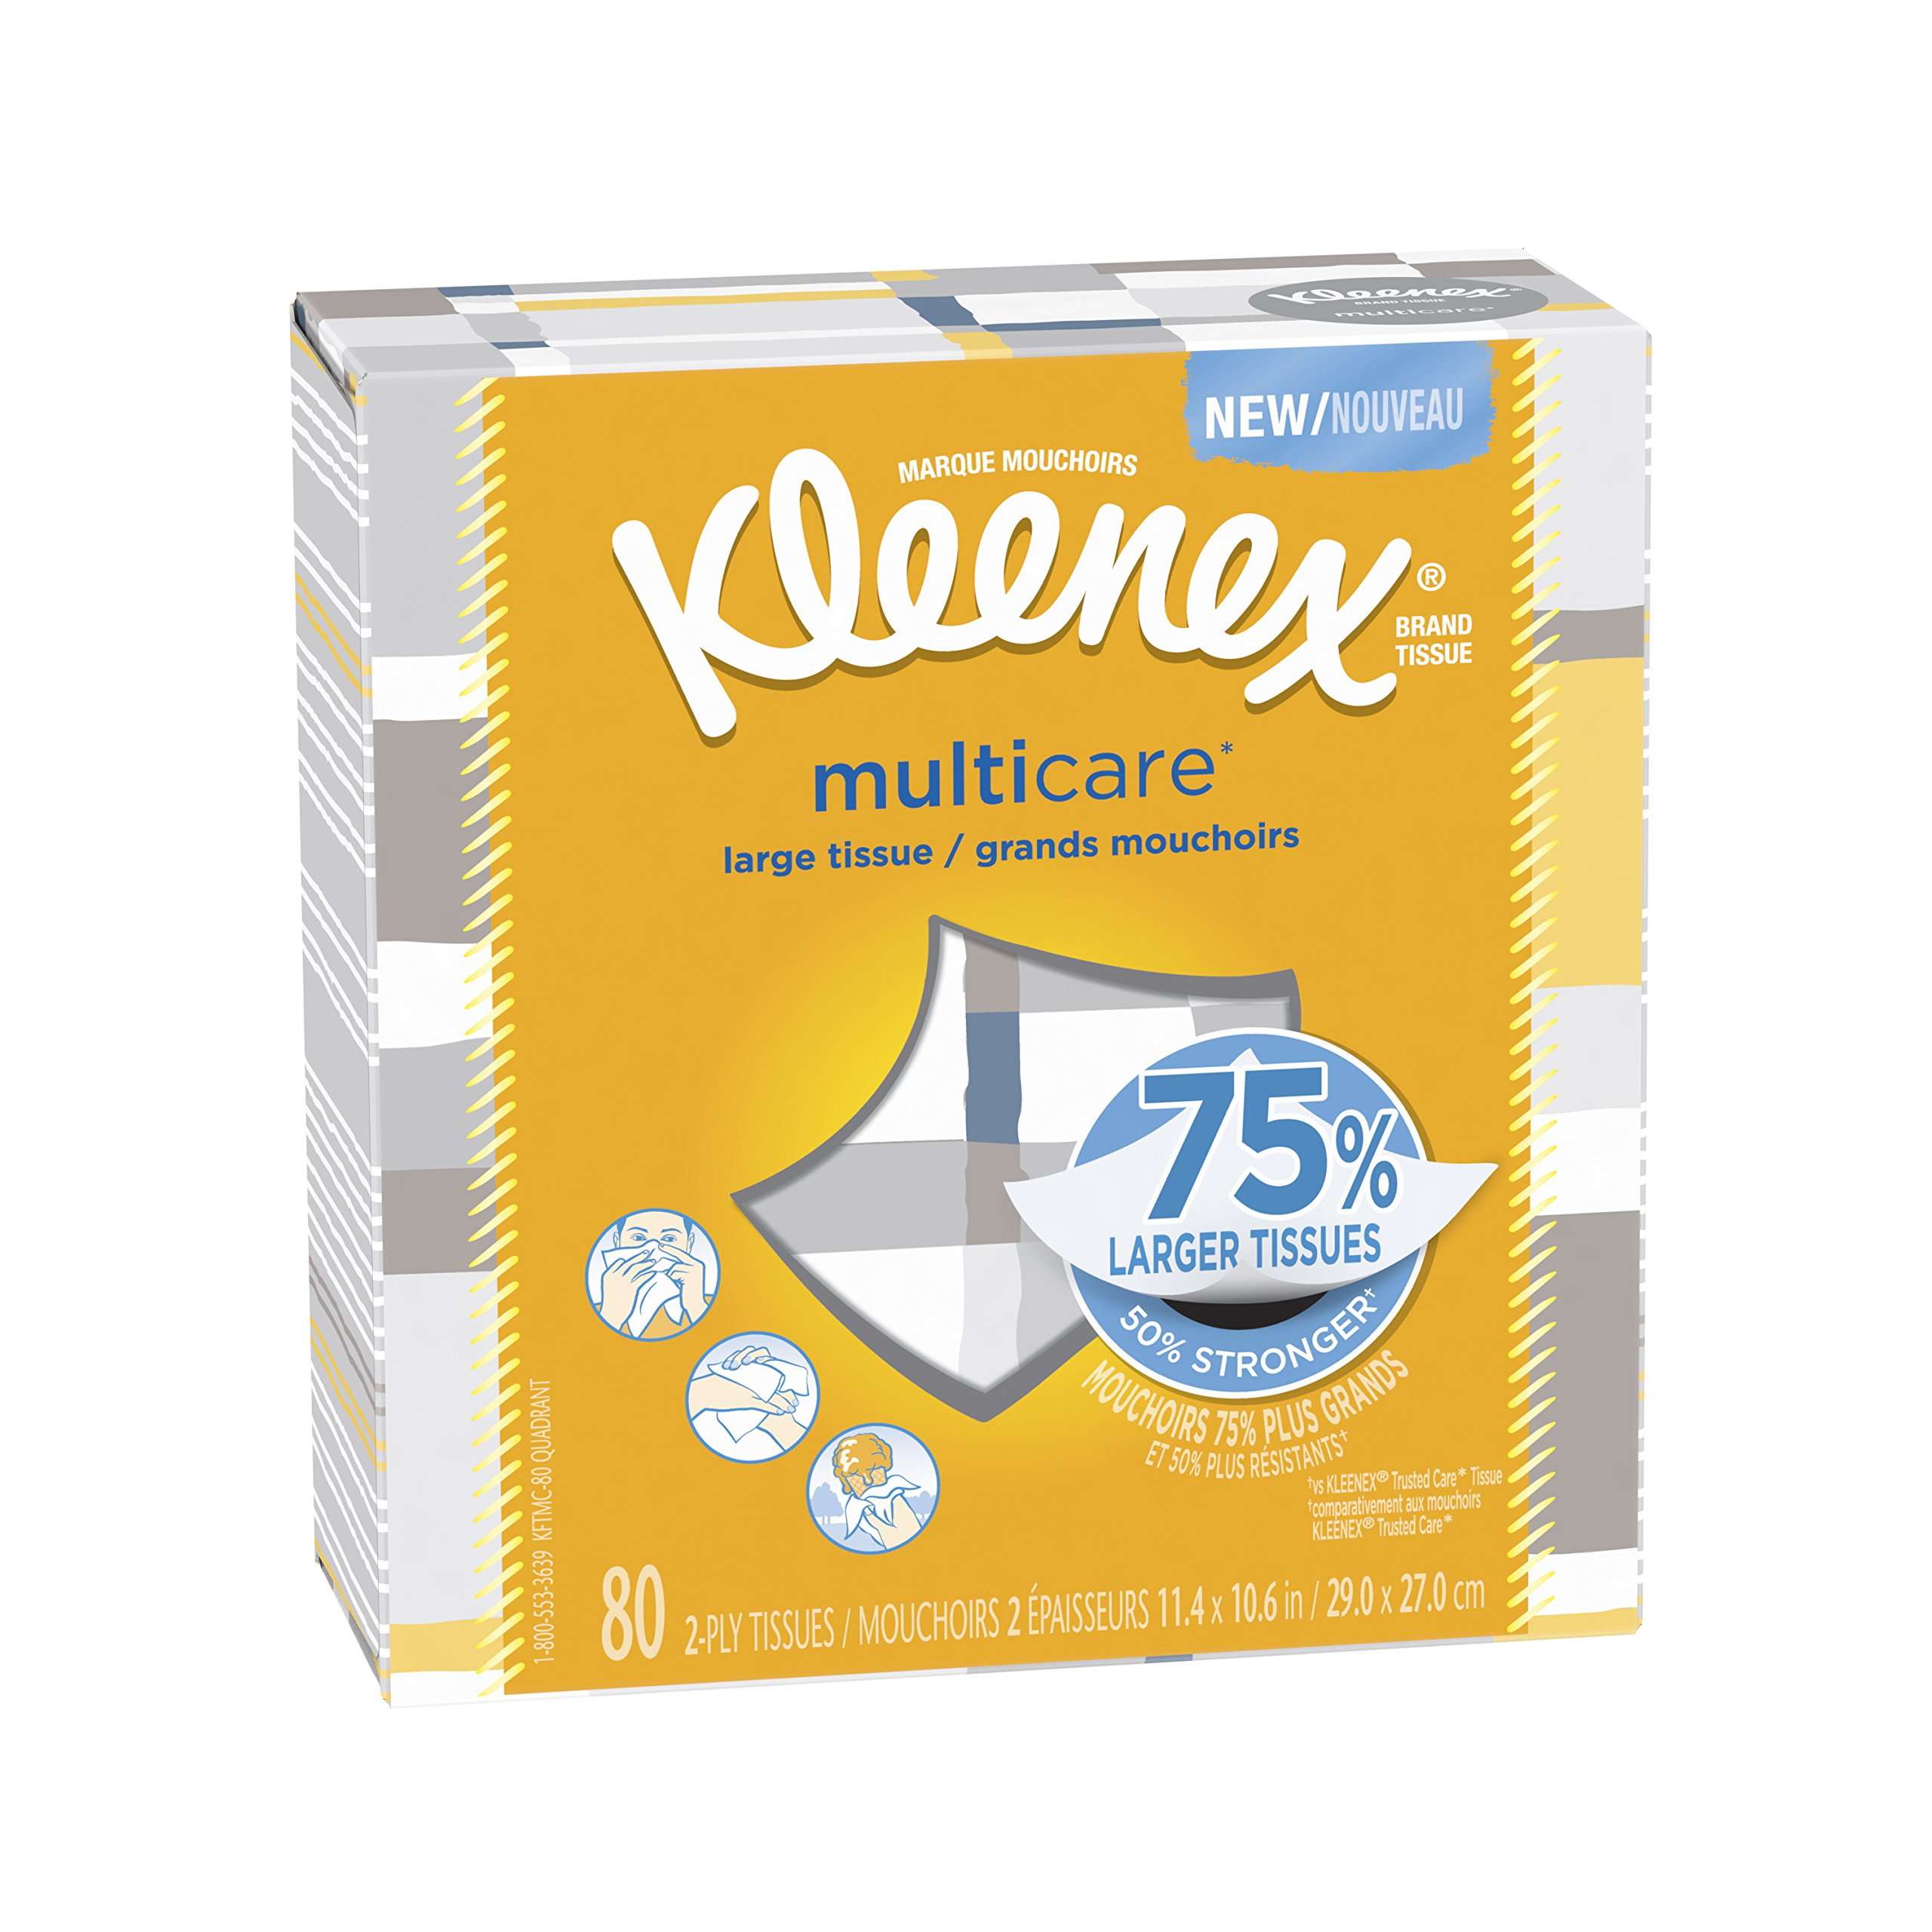 Kleenex Multicare Facial Tissues, 80 Tissues per  Box, 6 Packs